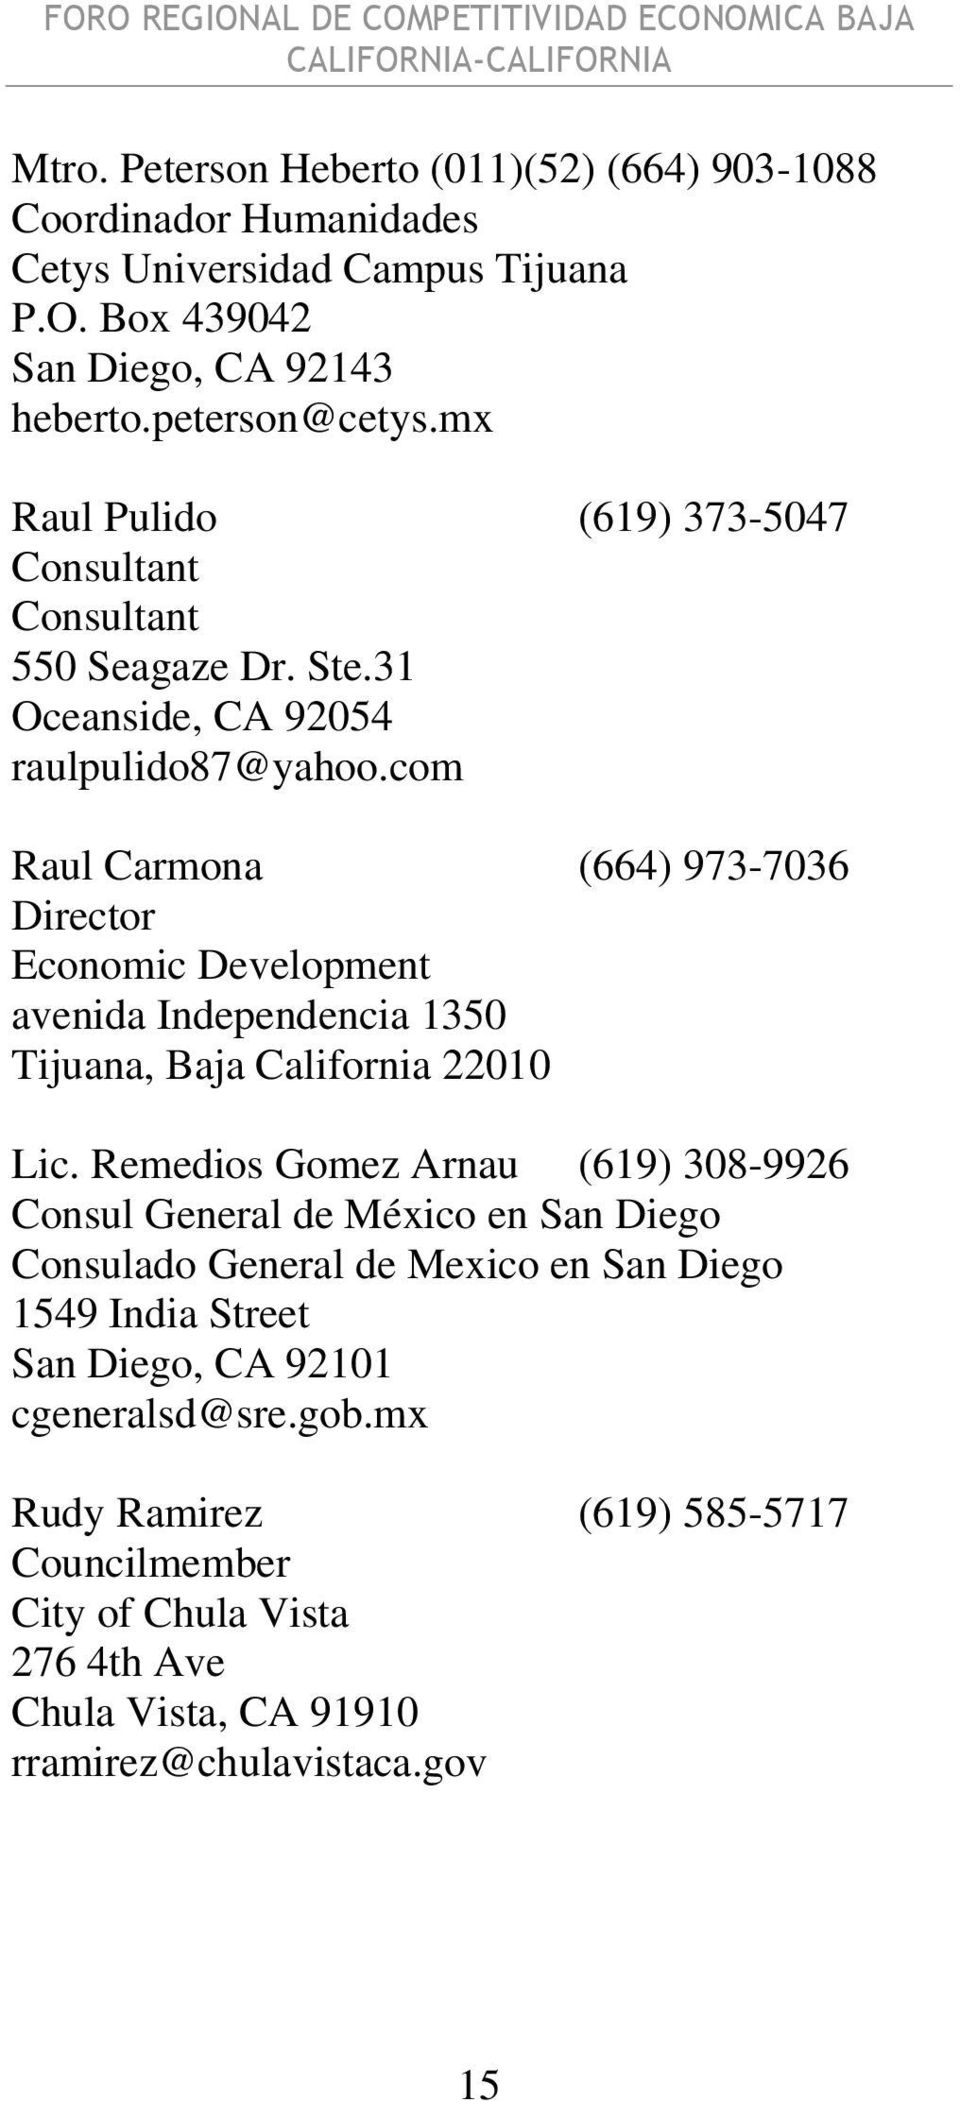 com Raul Carmona (664) 973-7036 Director Economic Development avenida Independencia 1350 Tijuana, Baja California 22010 Lic.